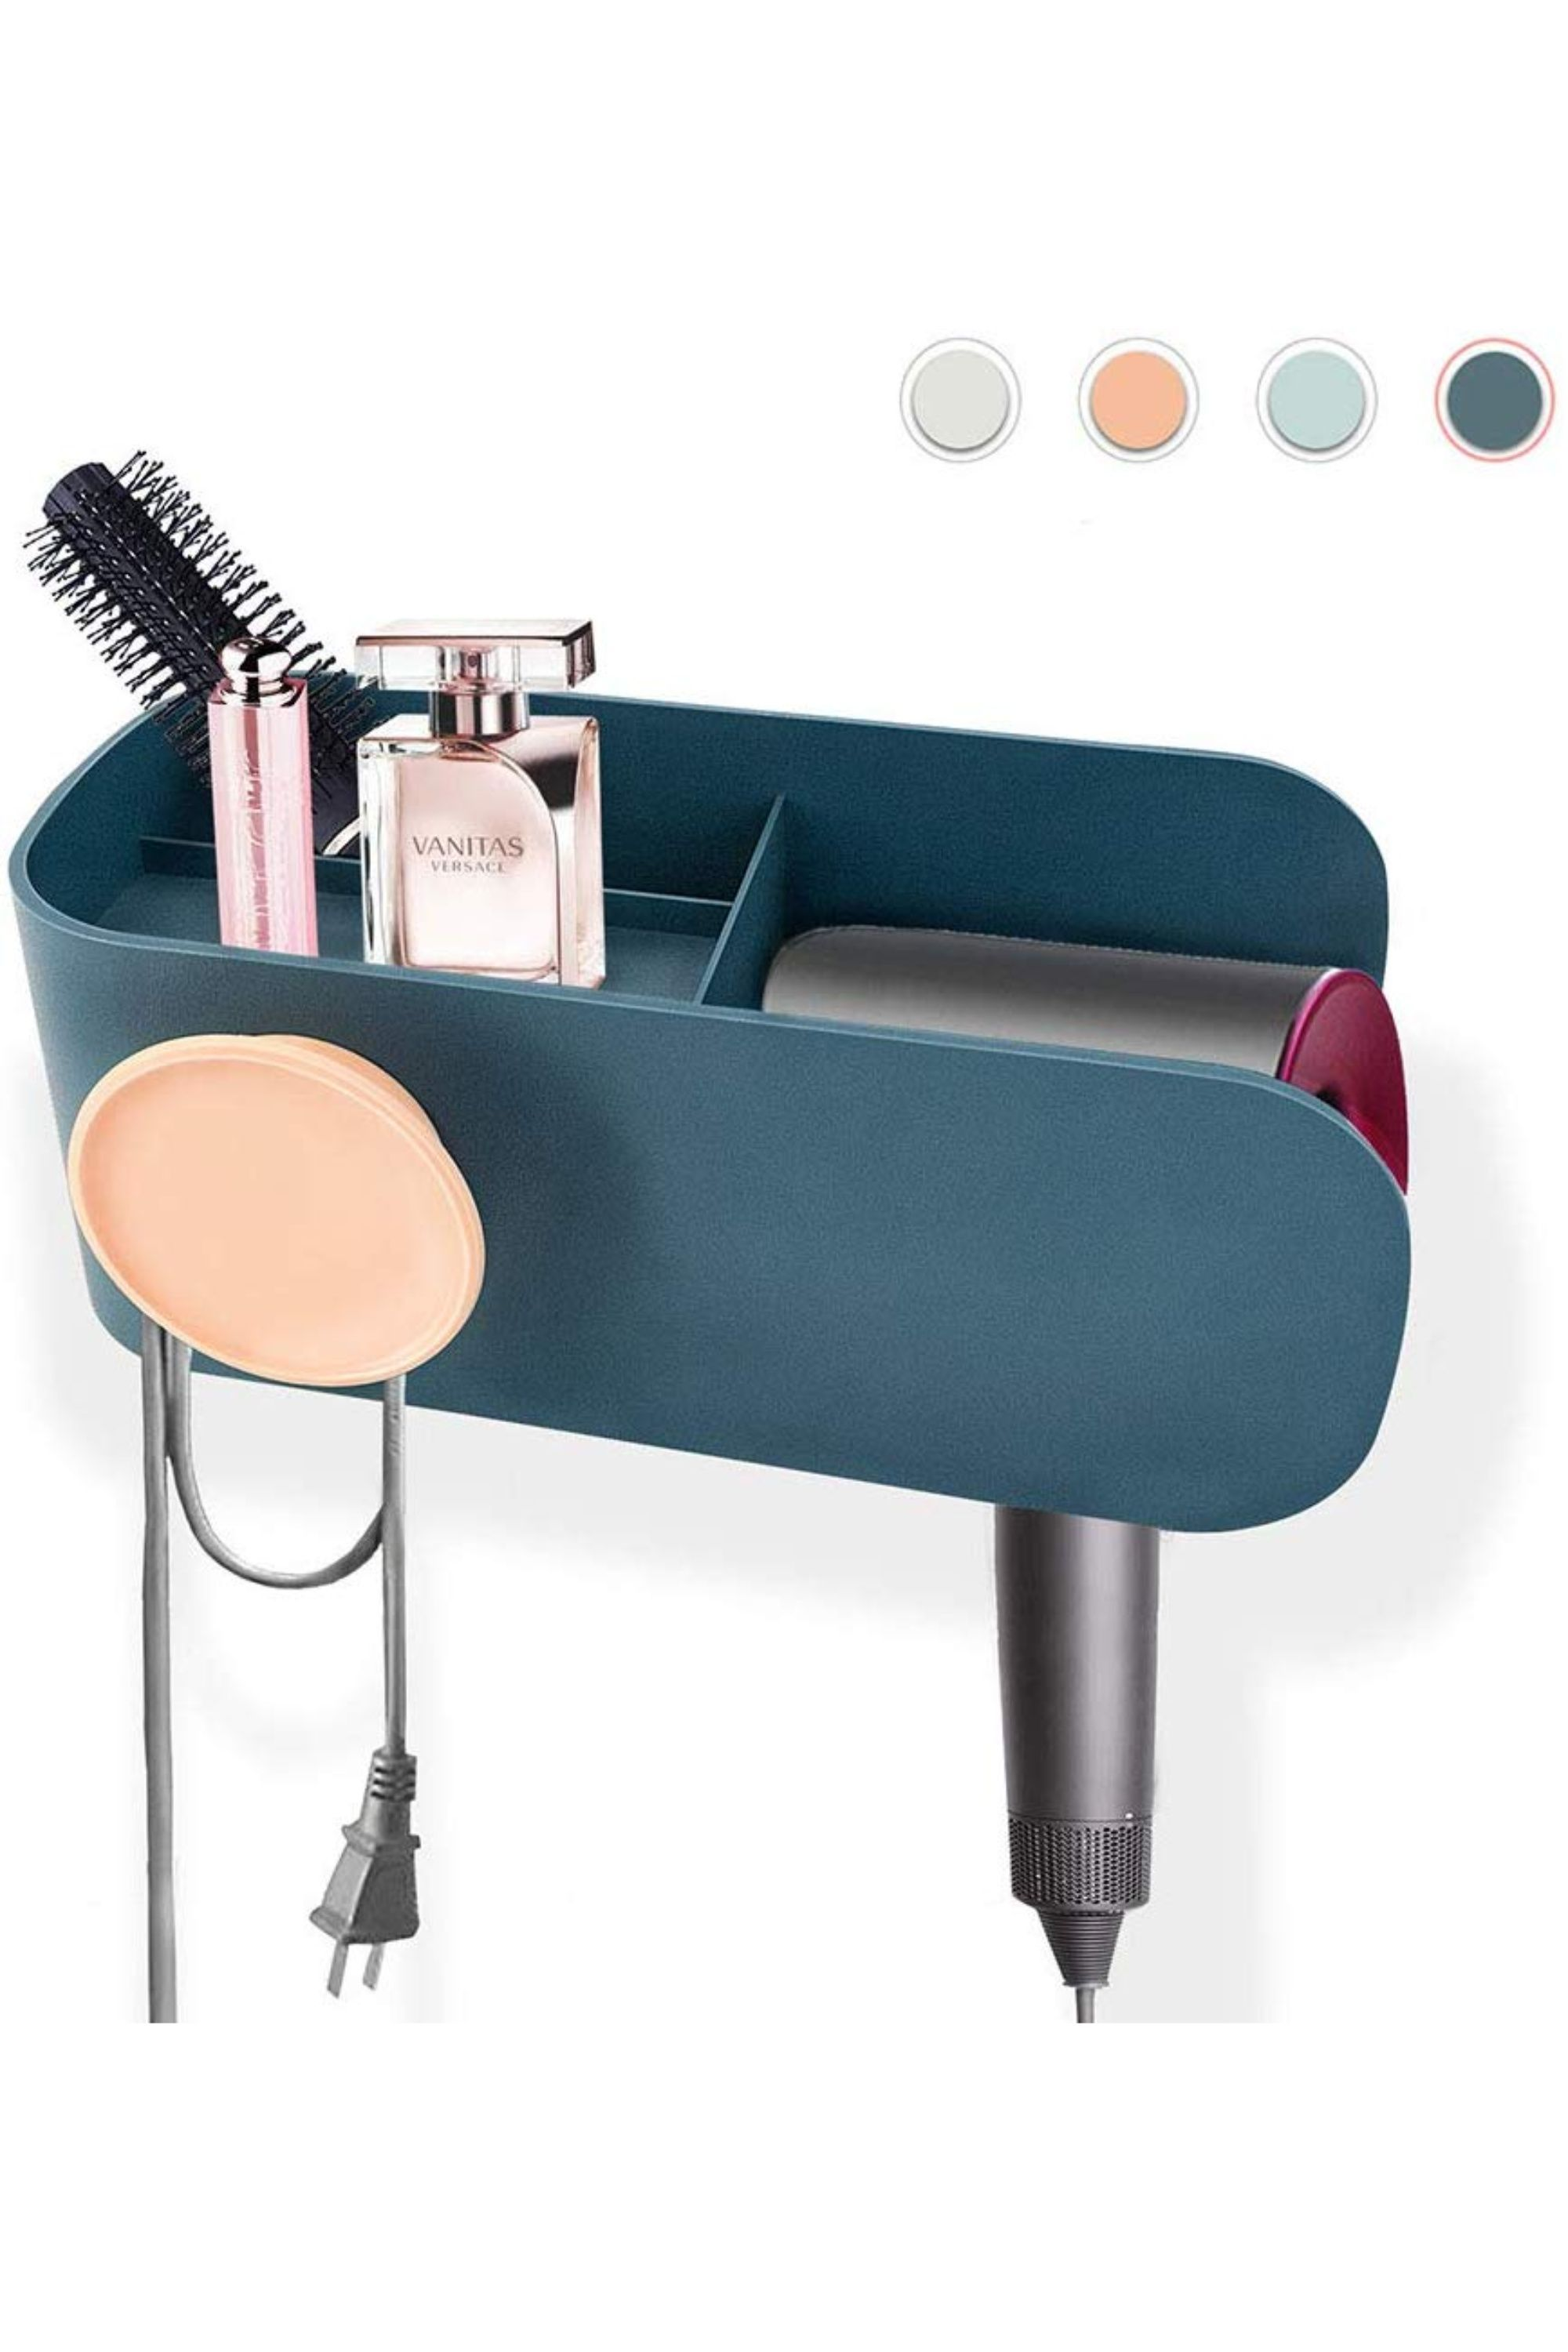 Salon Taupe Et Turquoise hair dryer holder, no drilling adhesive wall mount